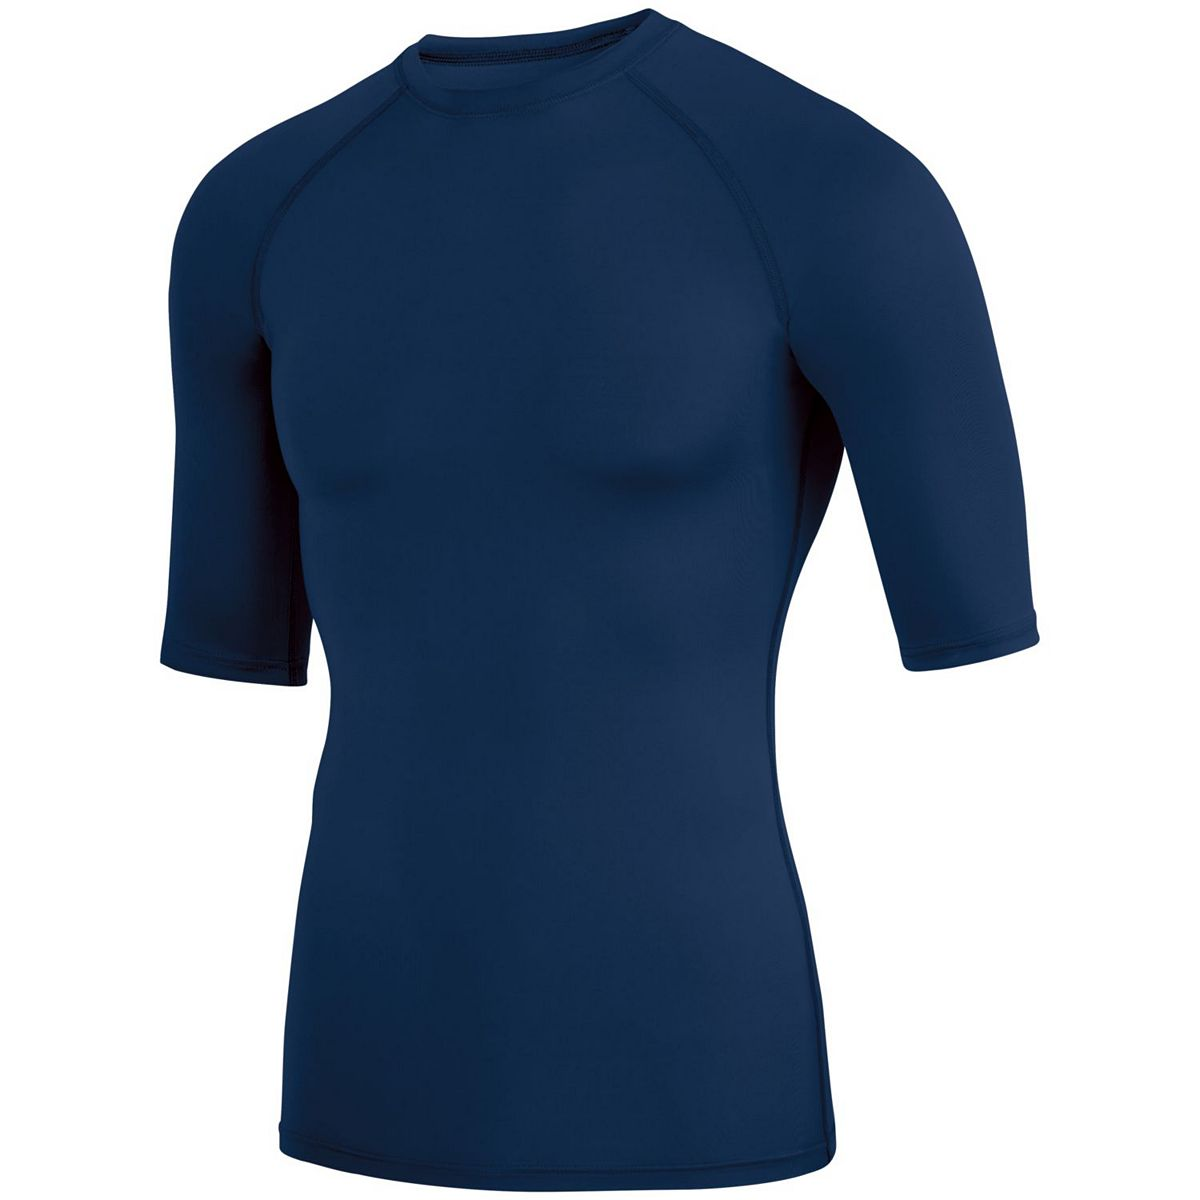 Augusta Hyperform Compression Half Slv Navy S - image 1 de 1